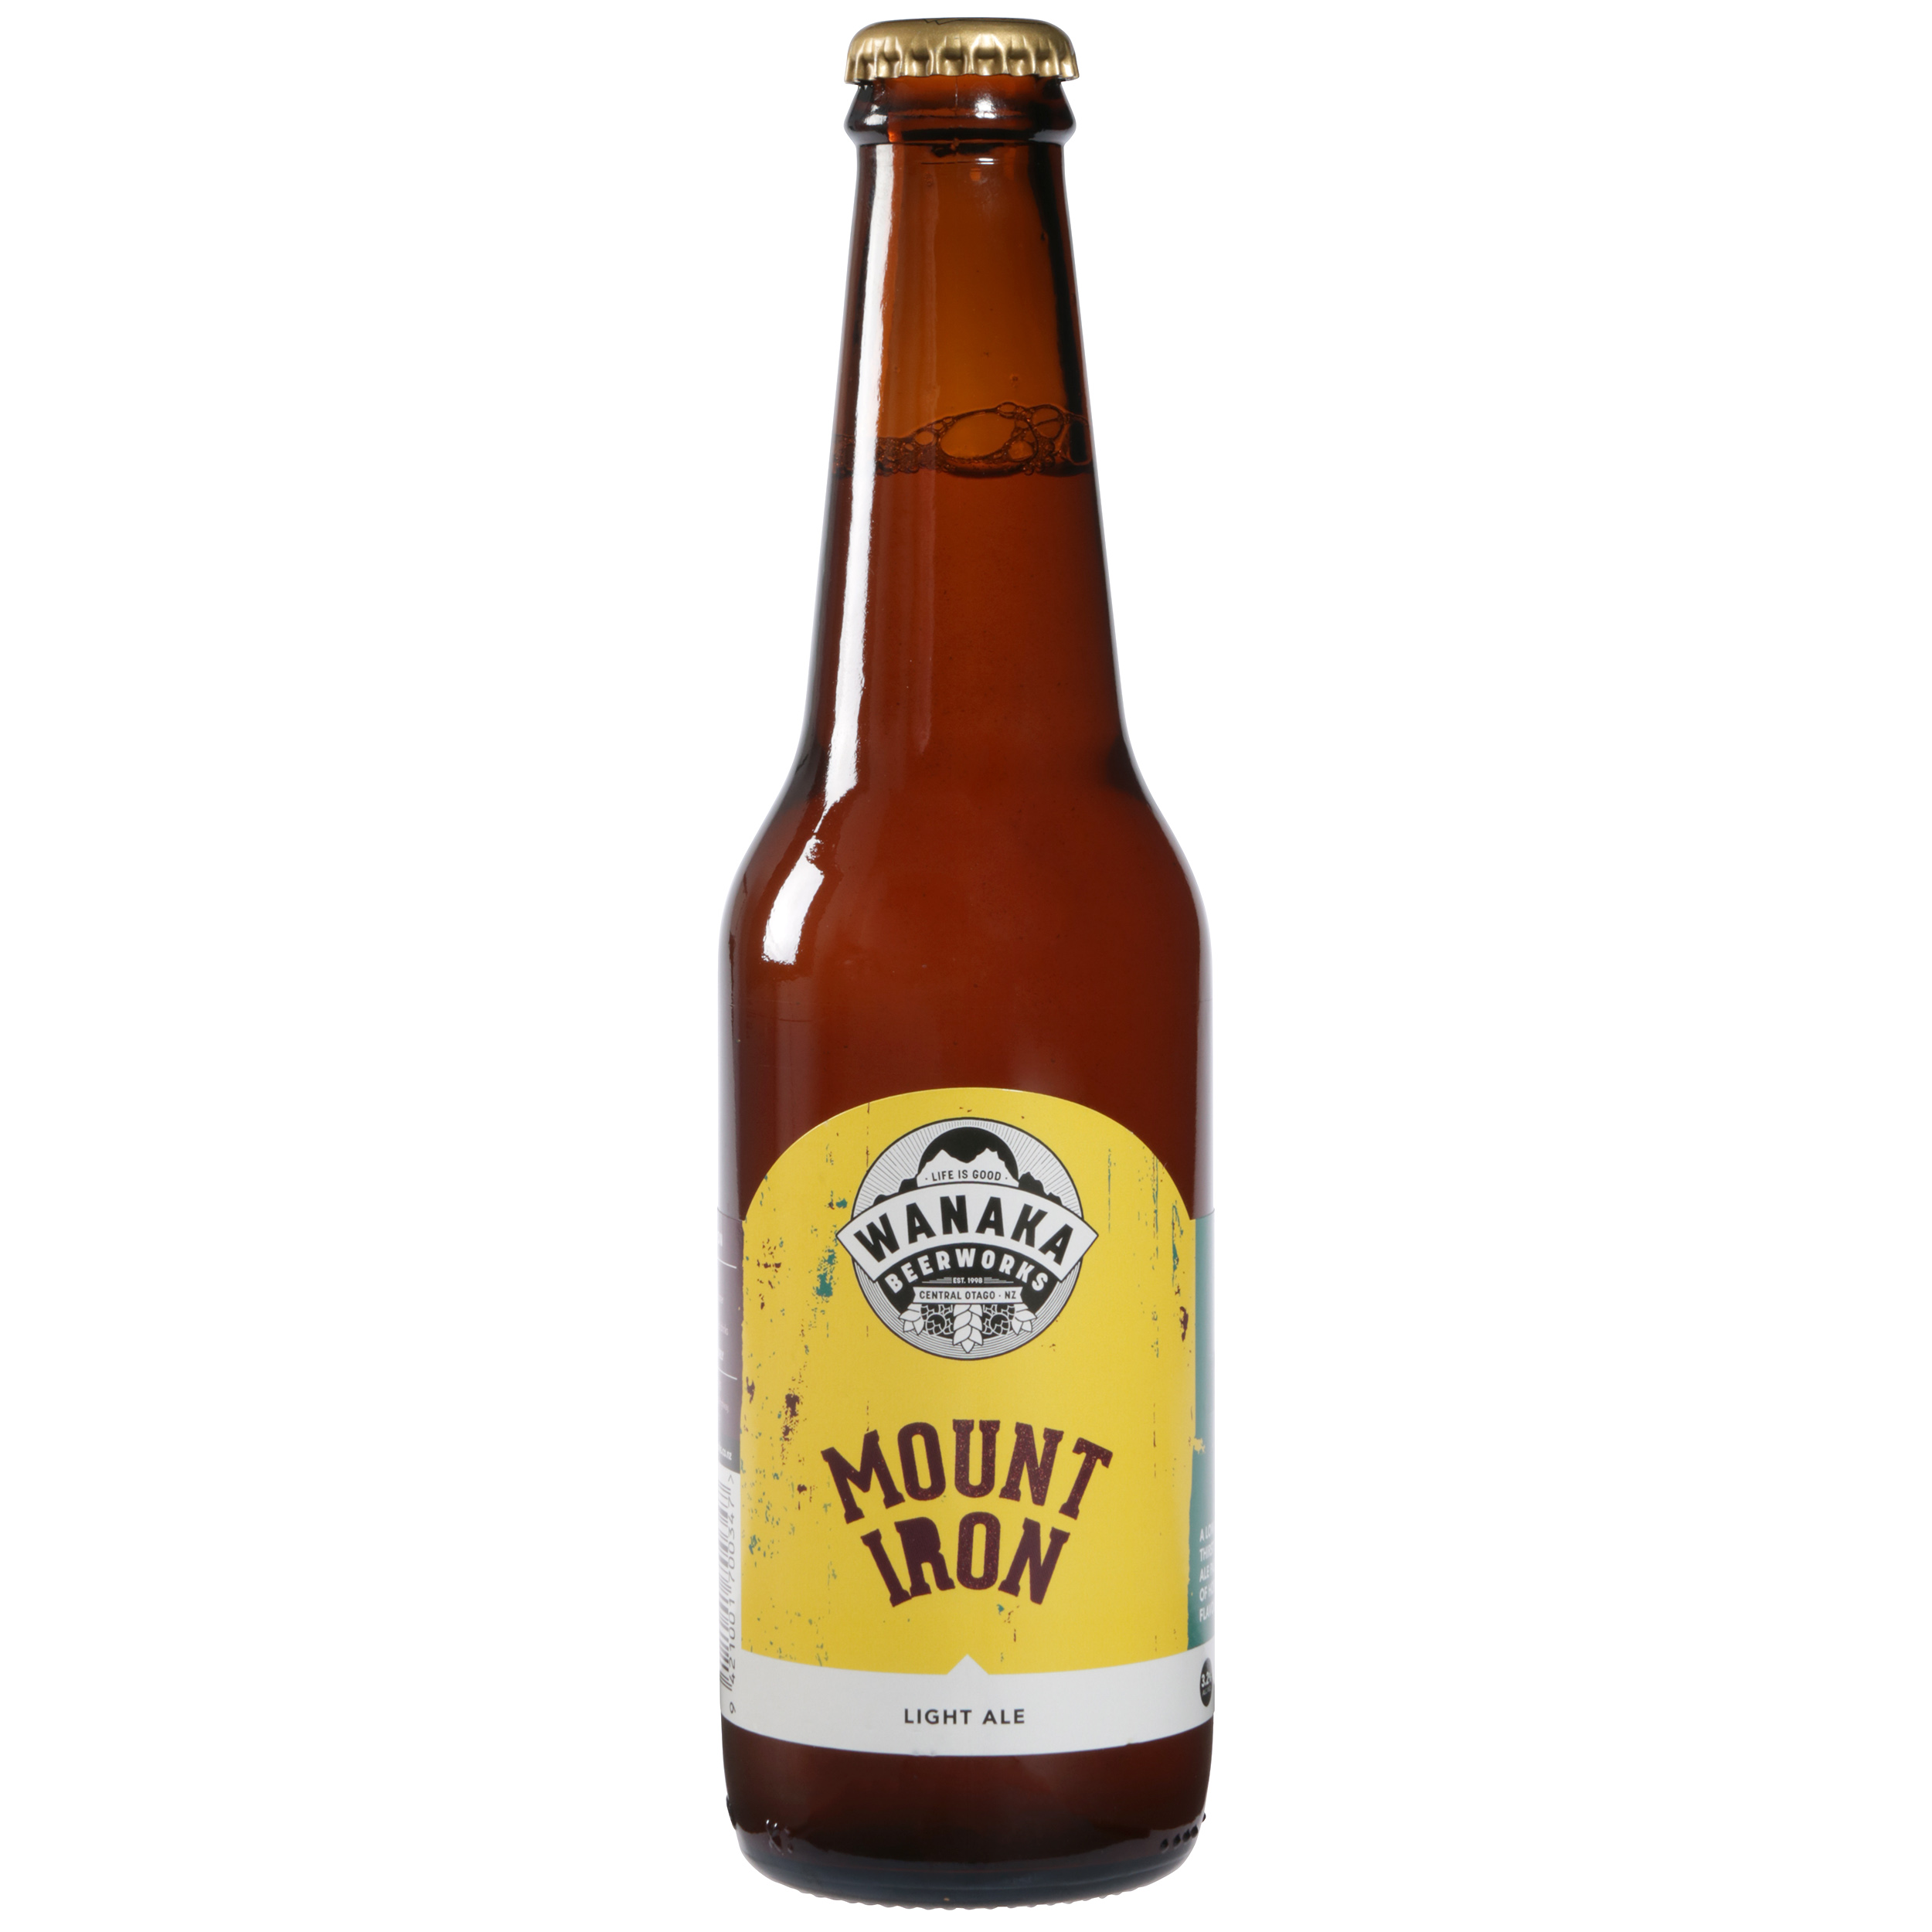 Mount Iron   Light Ale (3.2% ABV)  A Light thirst quencher ale packed full of Hop and Malt flavour